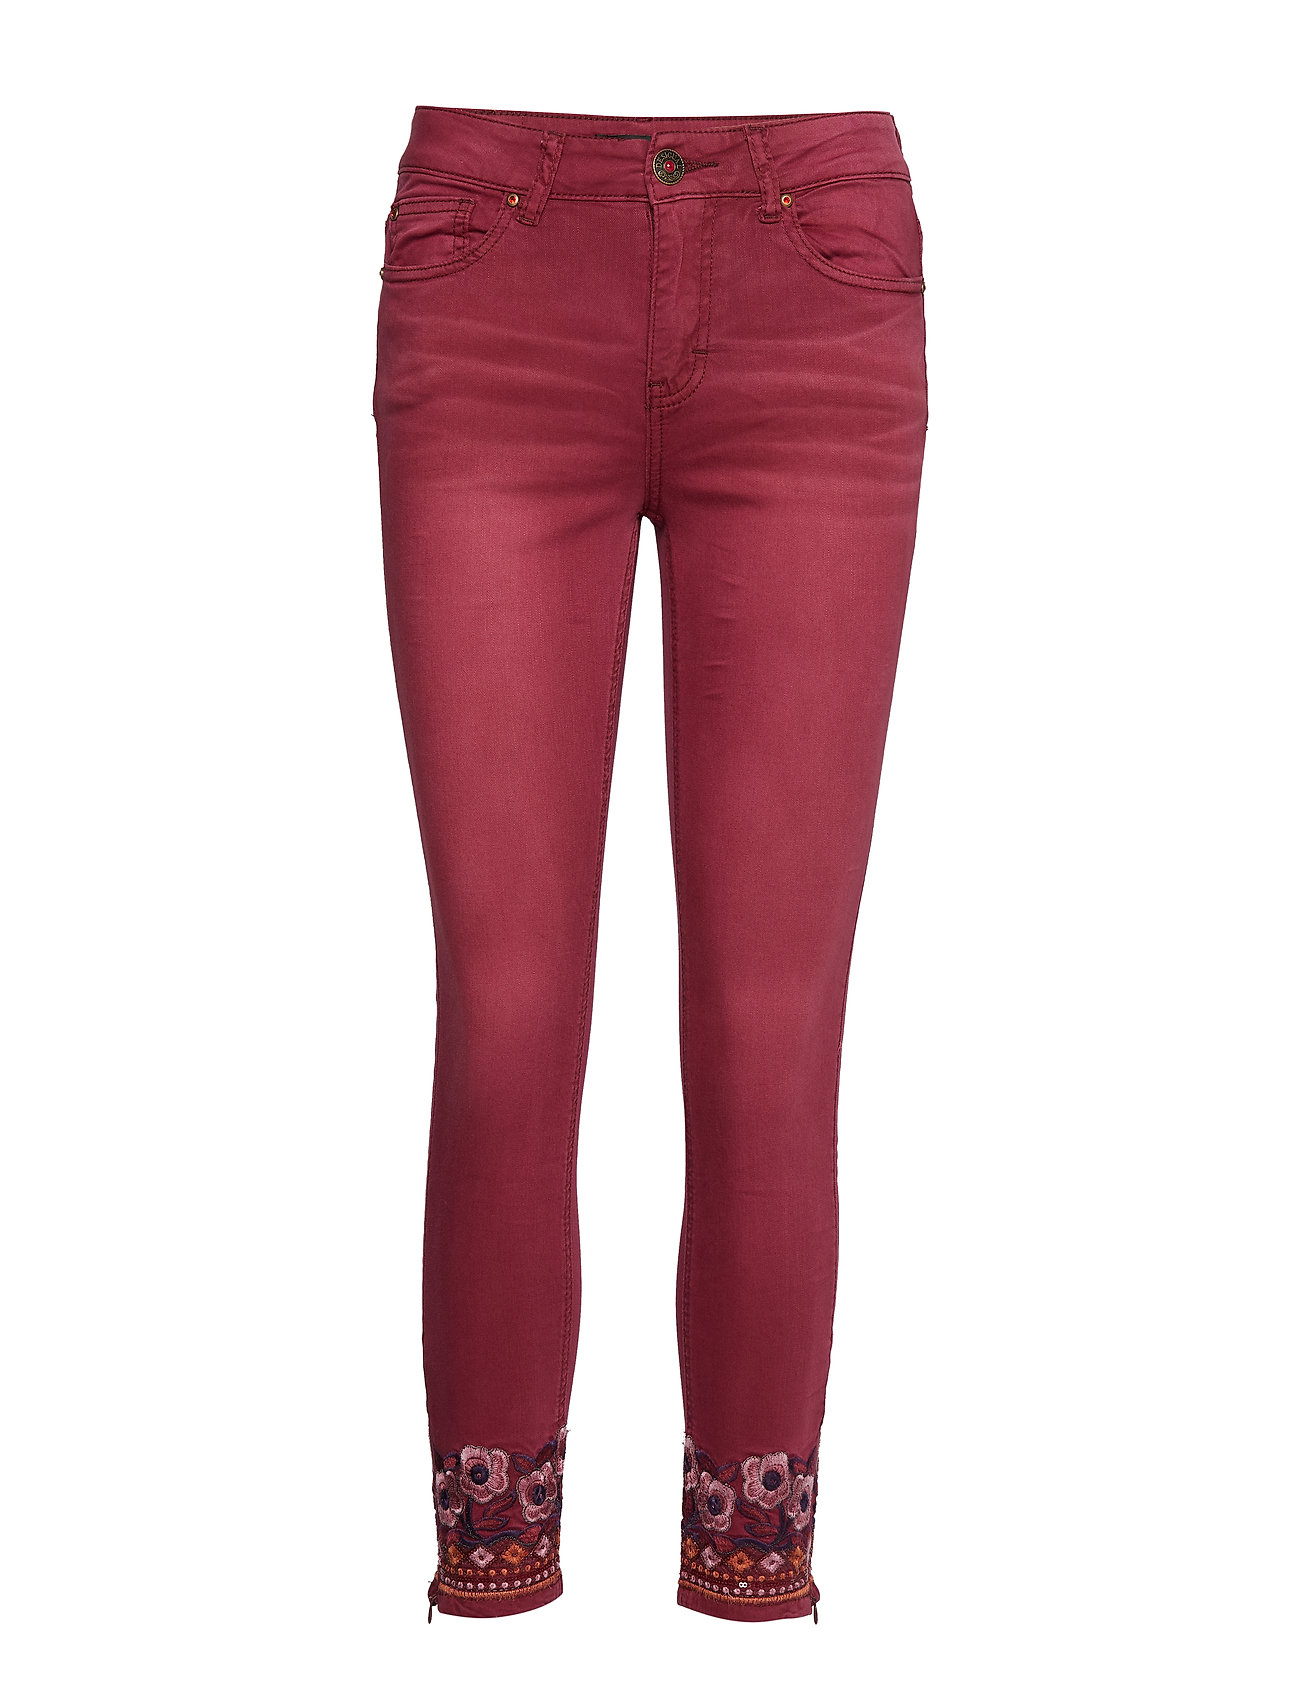 Desigual PANT MIAMI COLORS - BIKING RED